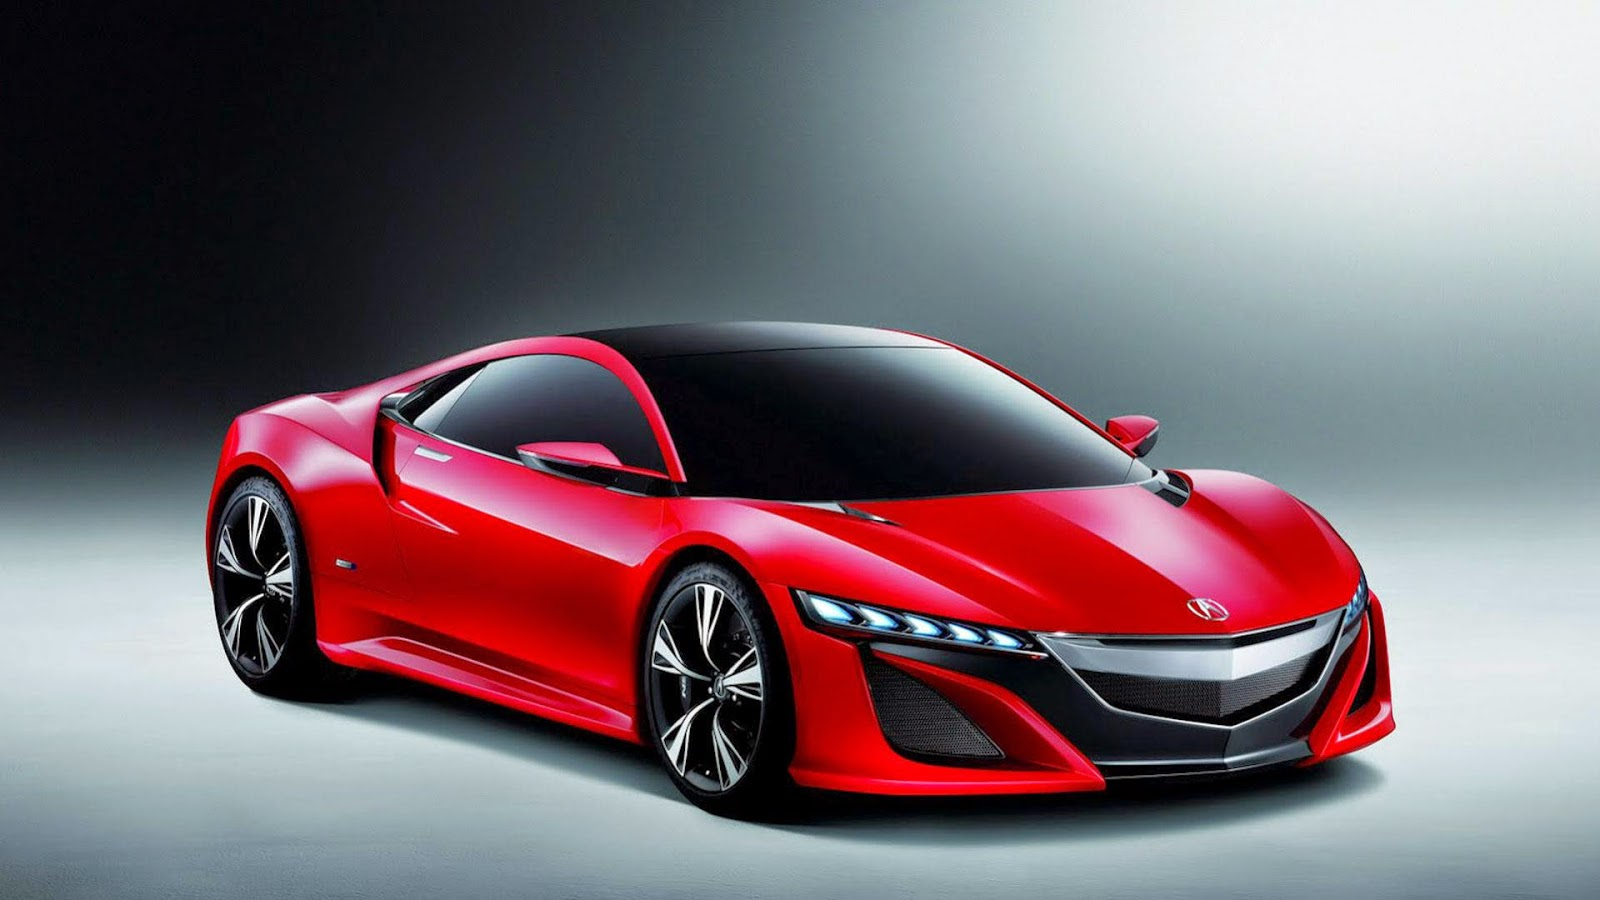 Coolest Car In The World Wallpaper Coolest Cars 2014